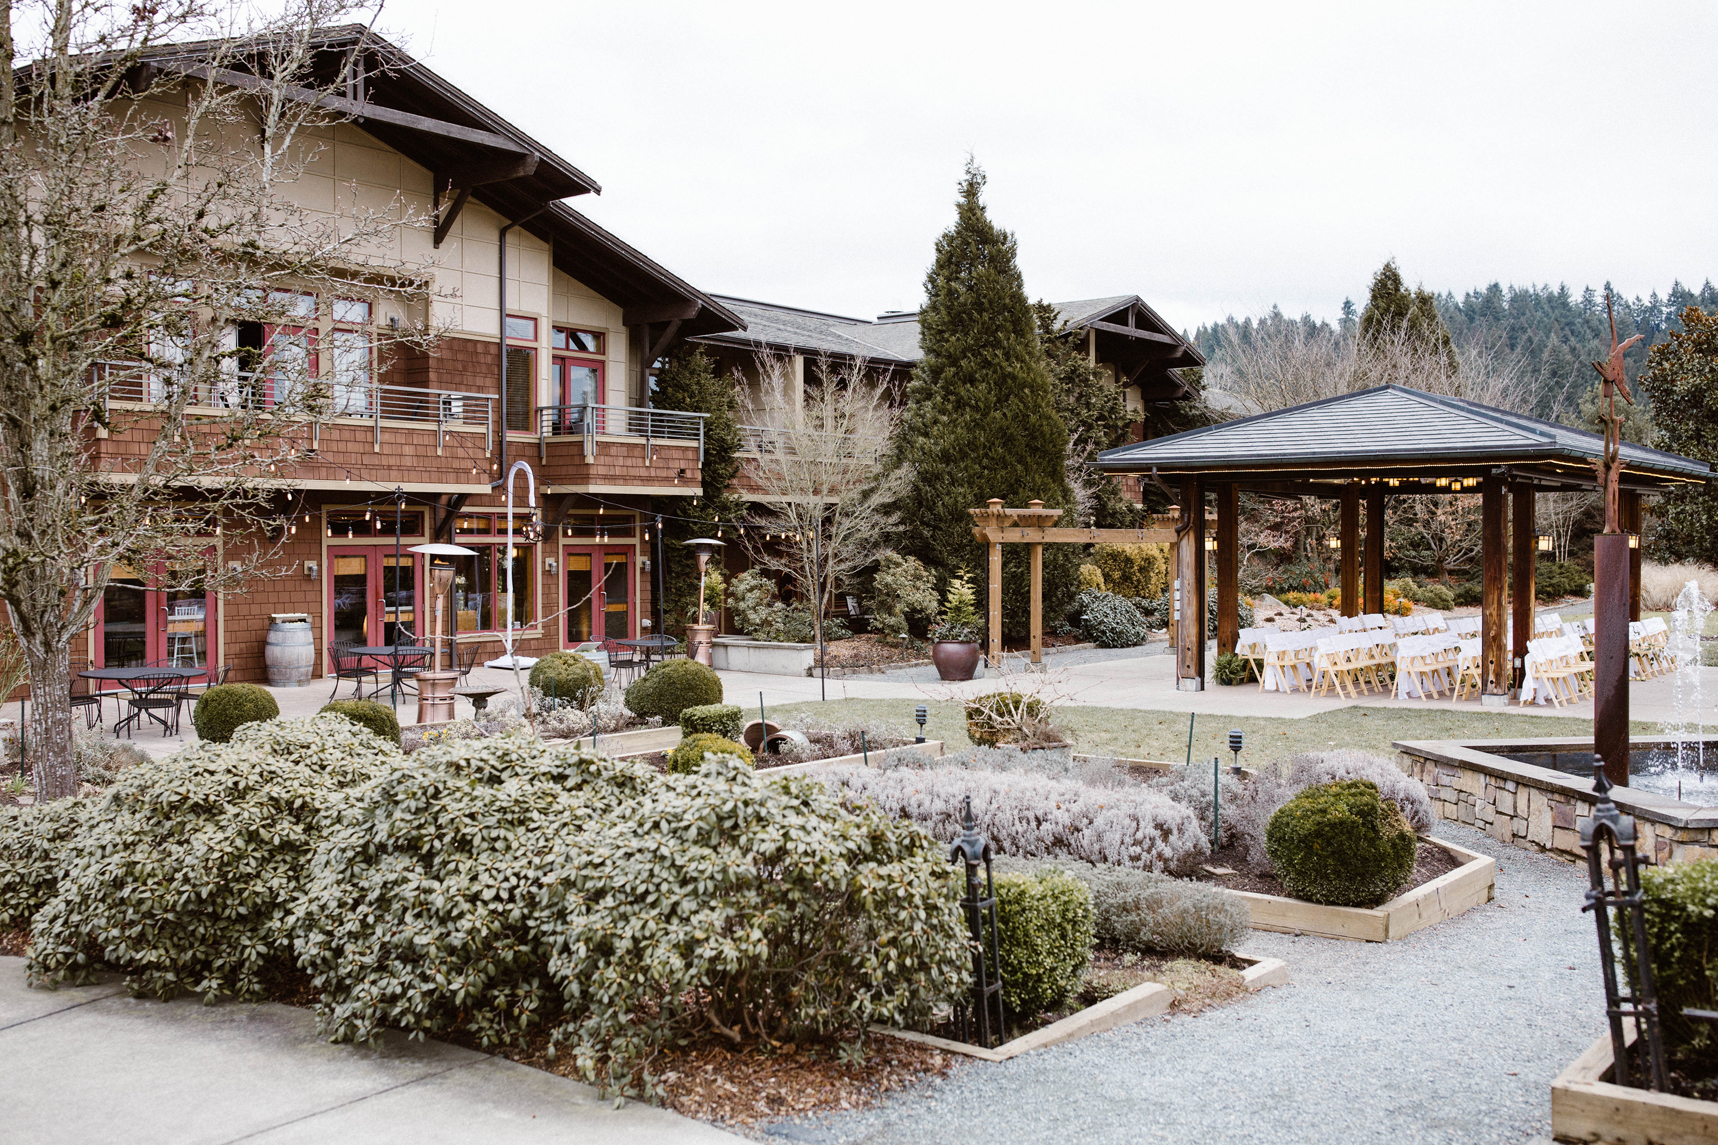 Willows+Lodge_Woodinville_2017_Weddings+In+Woodinville211.jpg